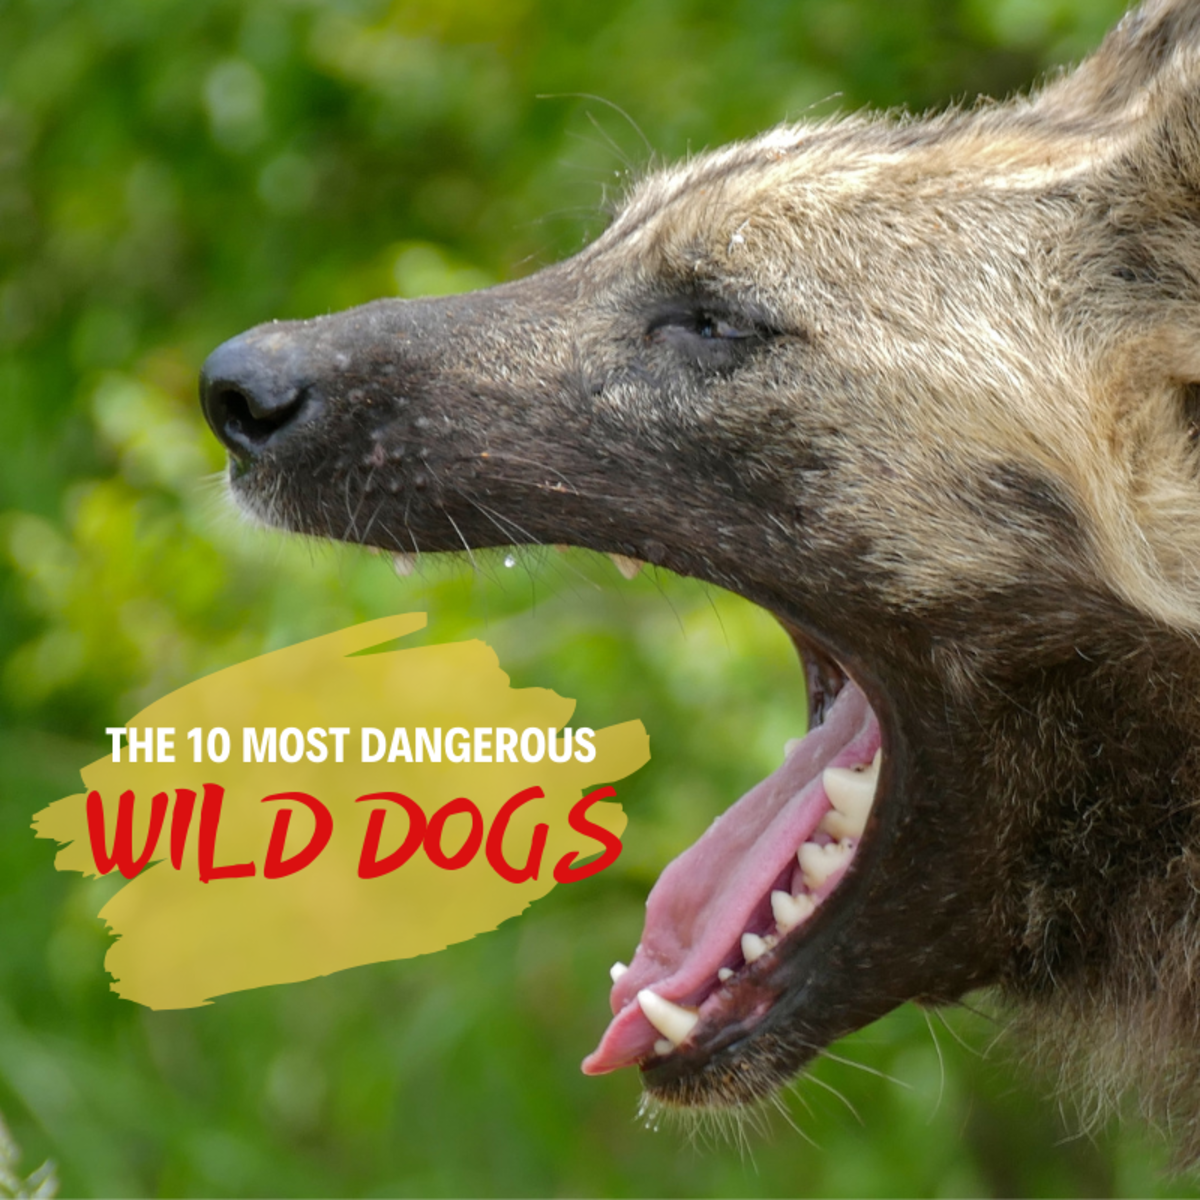 Top 10 Most Dangerous Wild Dogs: Tanukis, Dingoes, and More